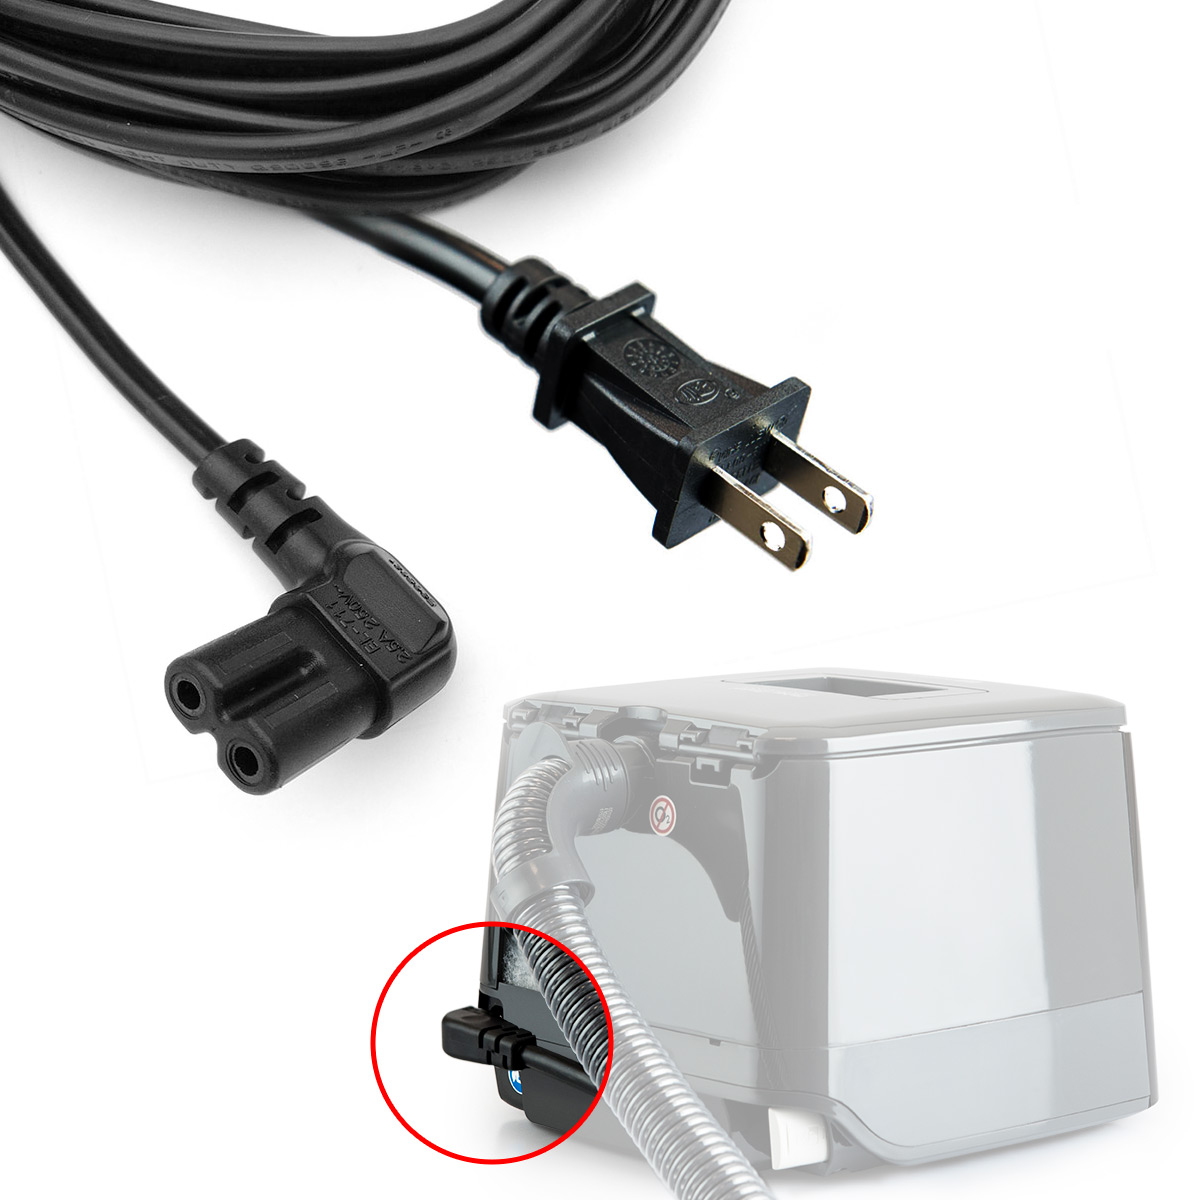 AC Power Cord for F&P SleepStyle Series CPAP Machines